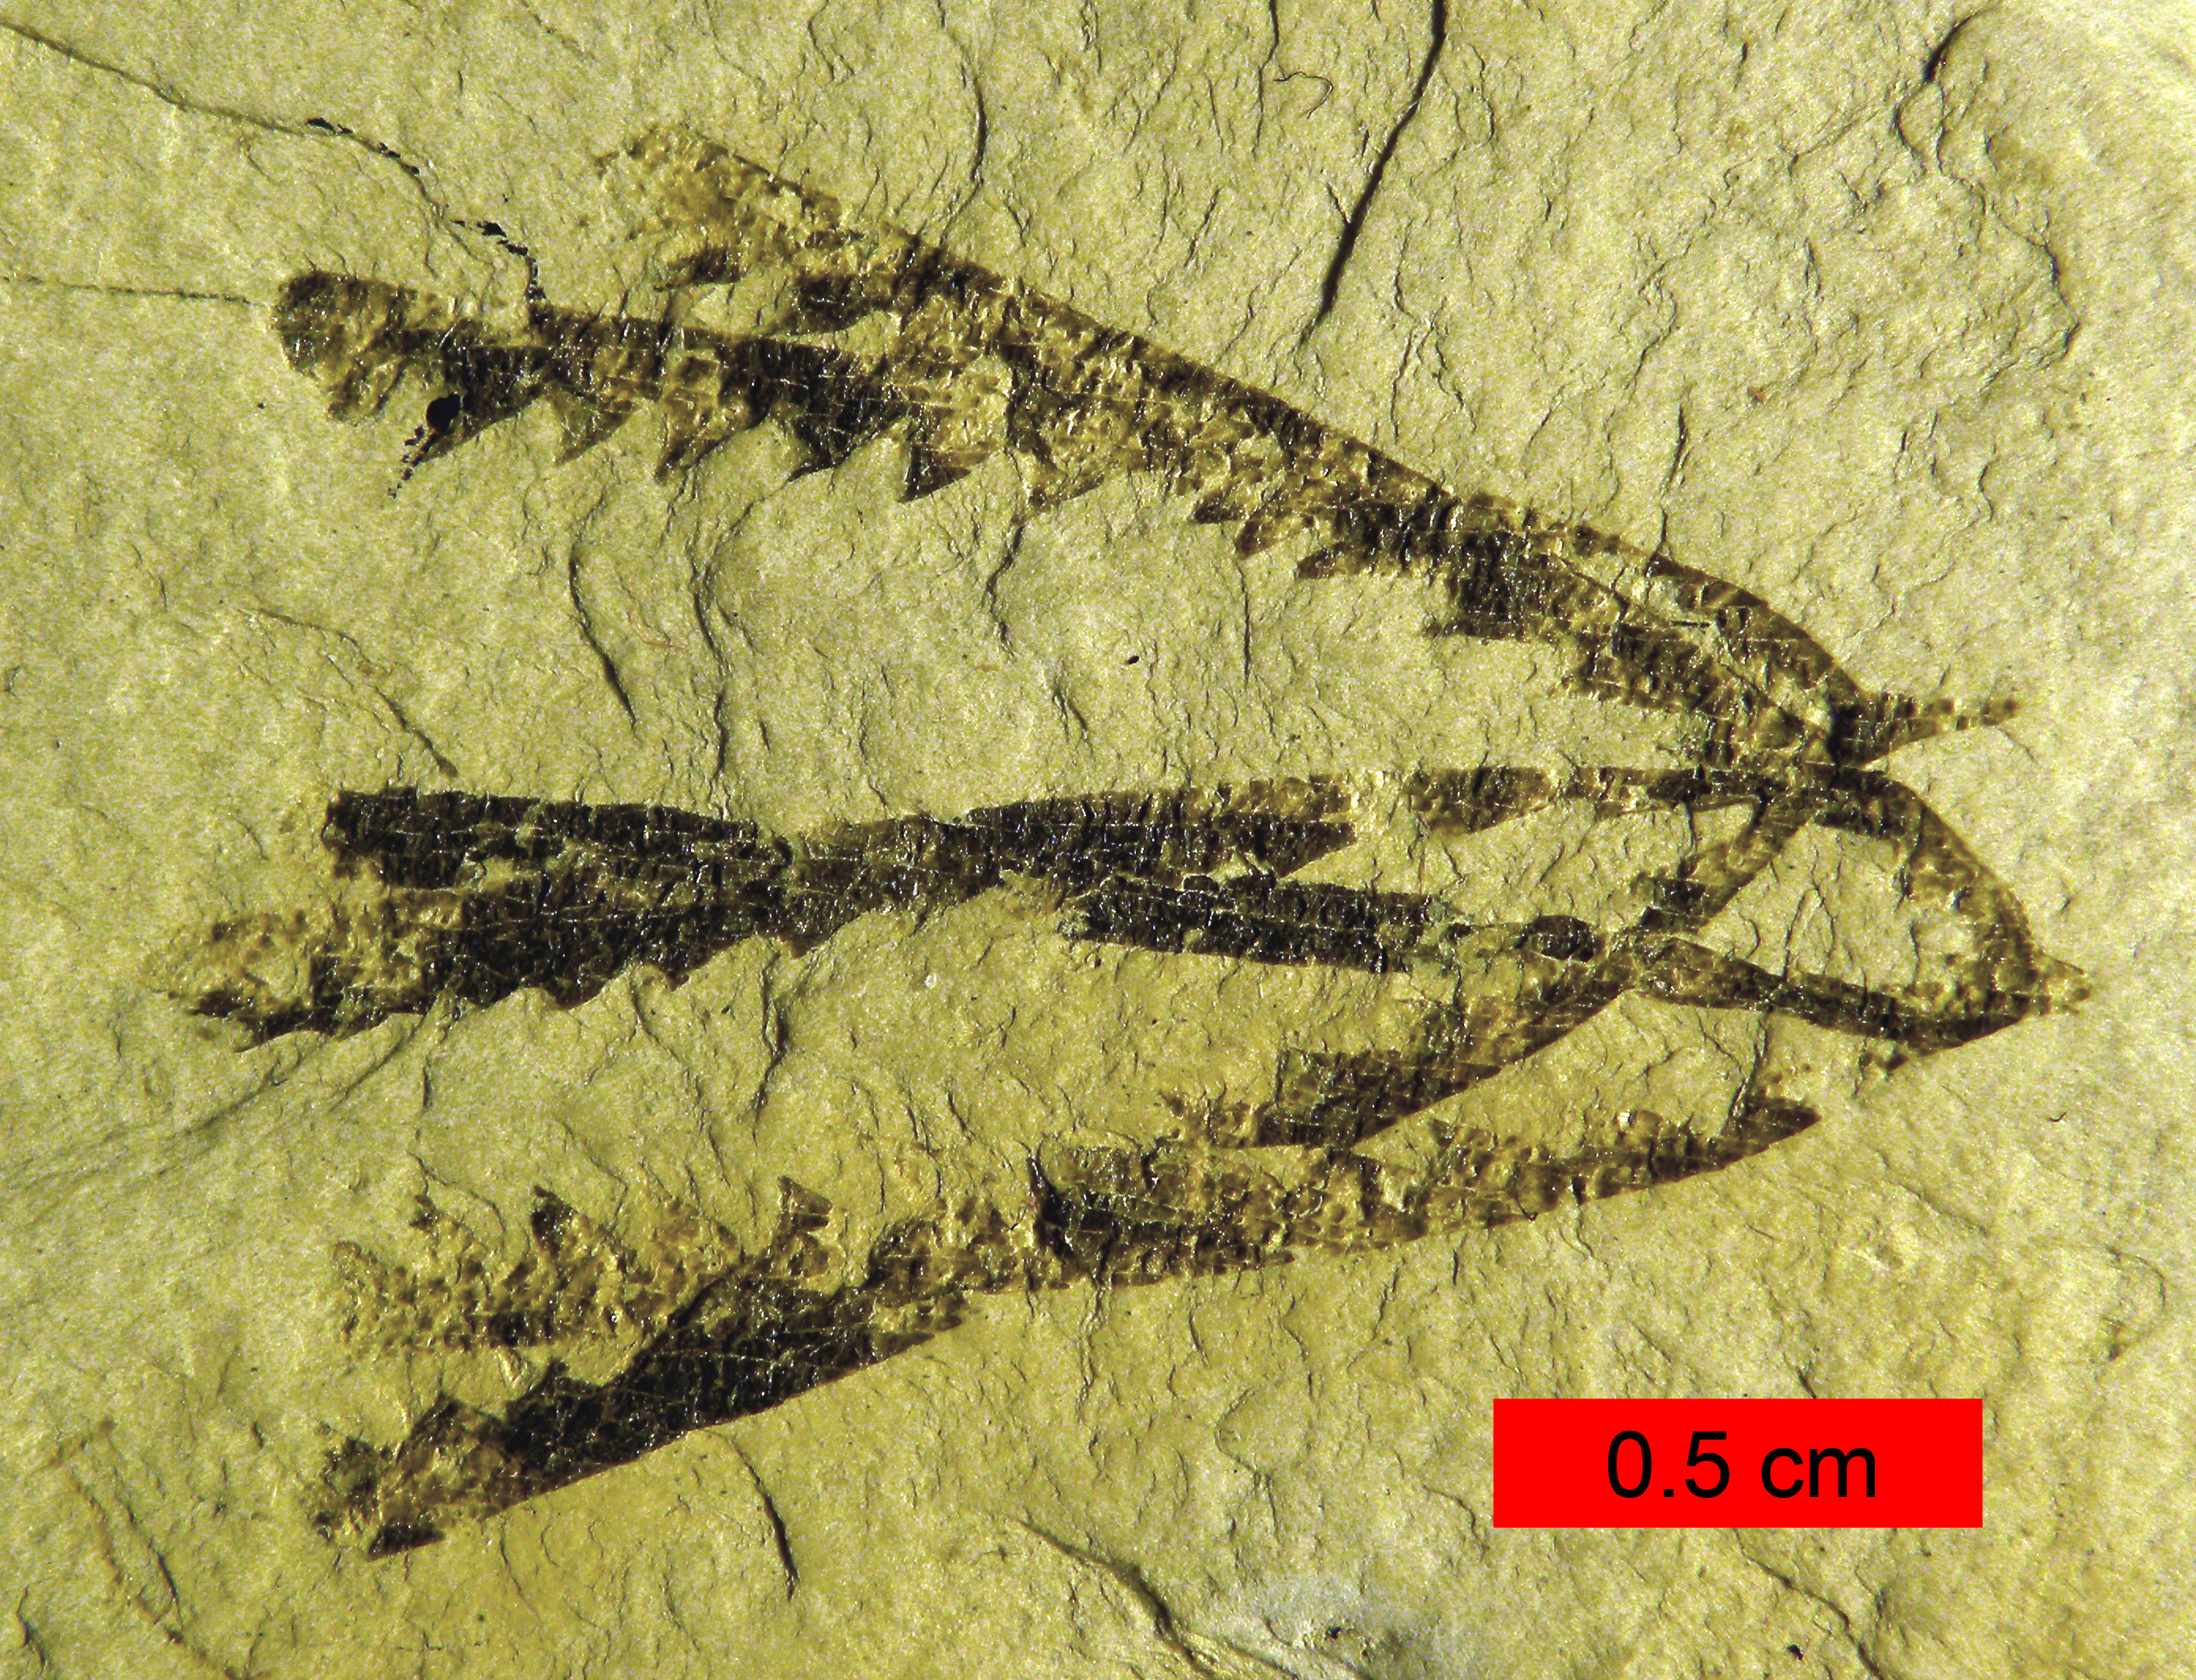 Fossils of graptolites from the Ordovician period. Here you can see a few overlapping tubes, which would have held members of a graptolite colony.